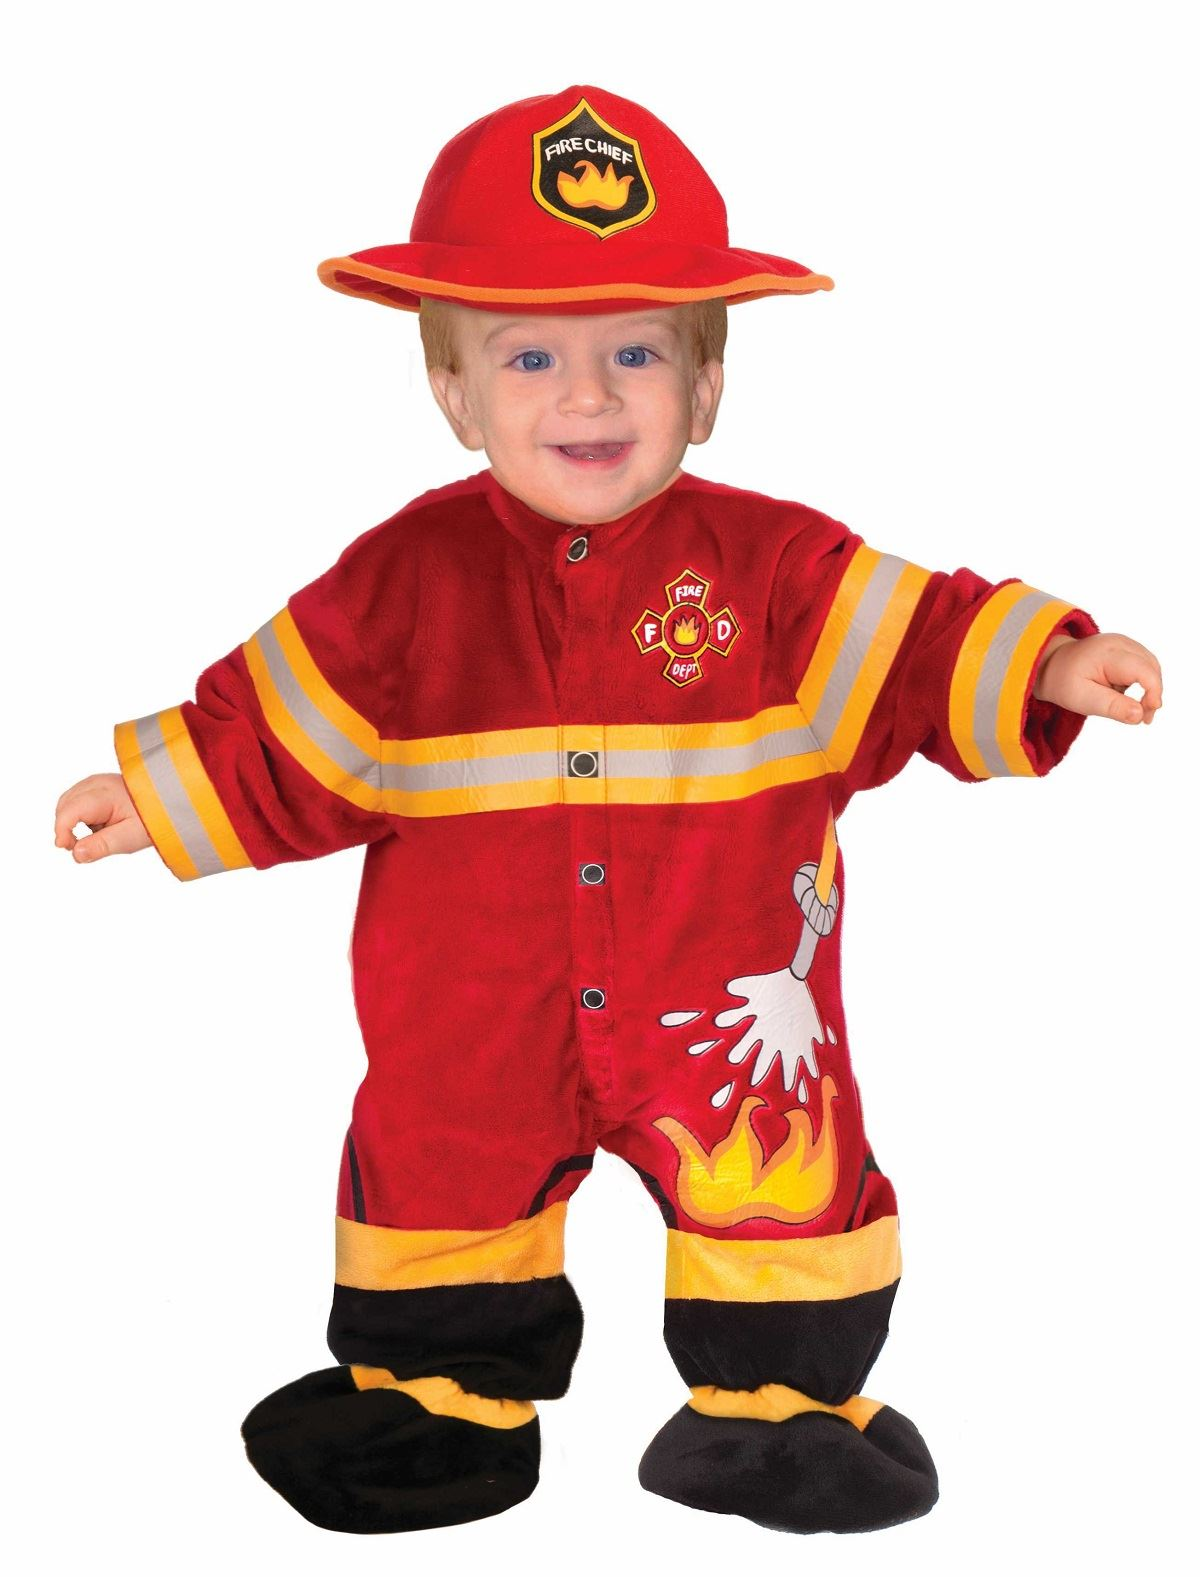 Kids Fireman Toddler Costume | $15.99 | The Costume Land